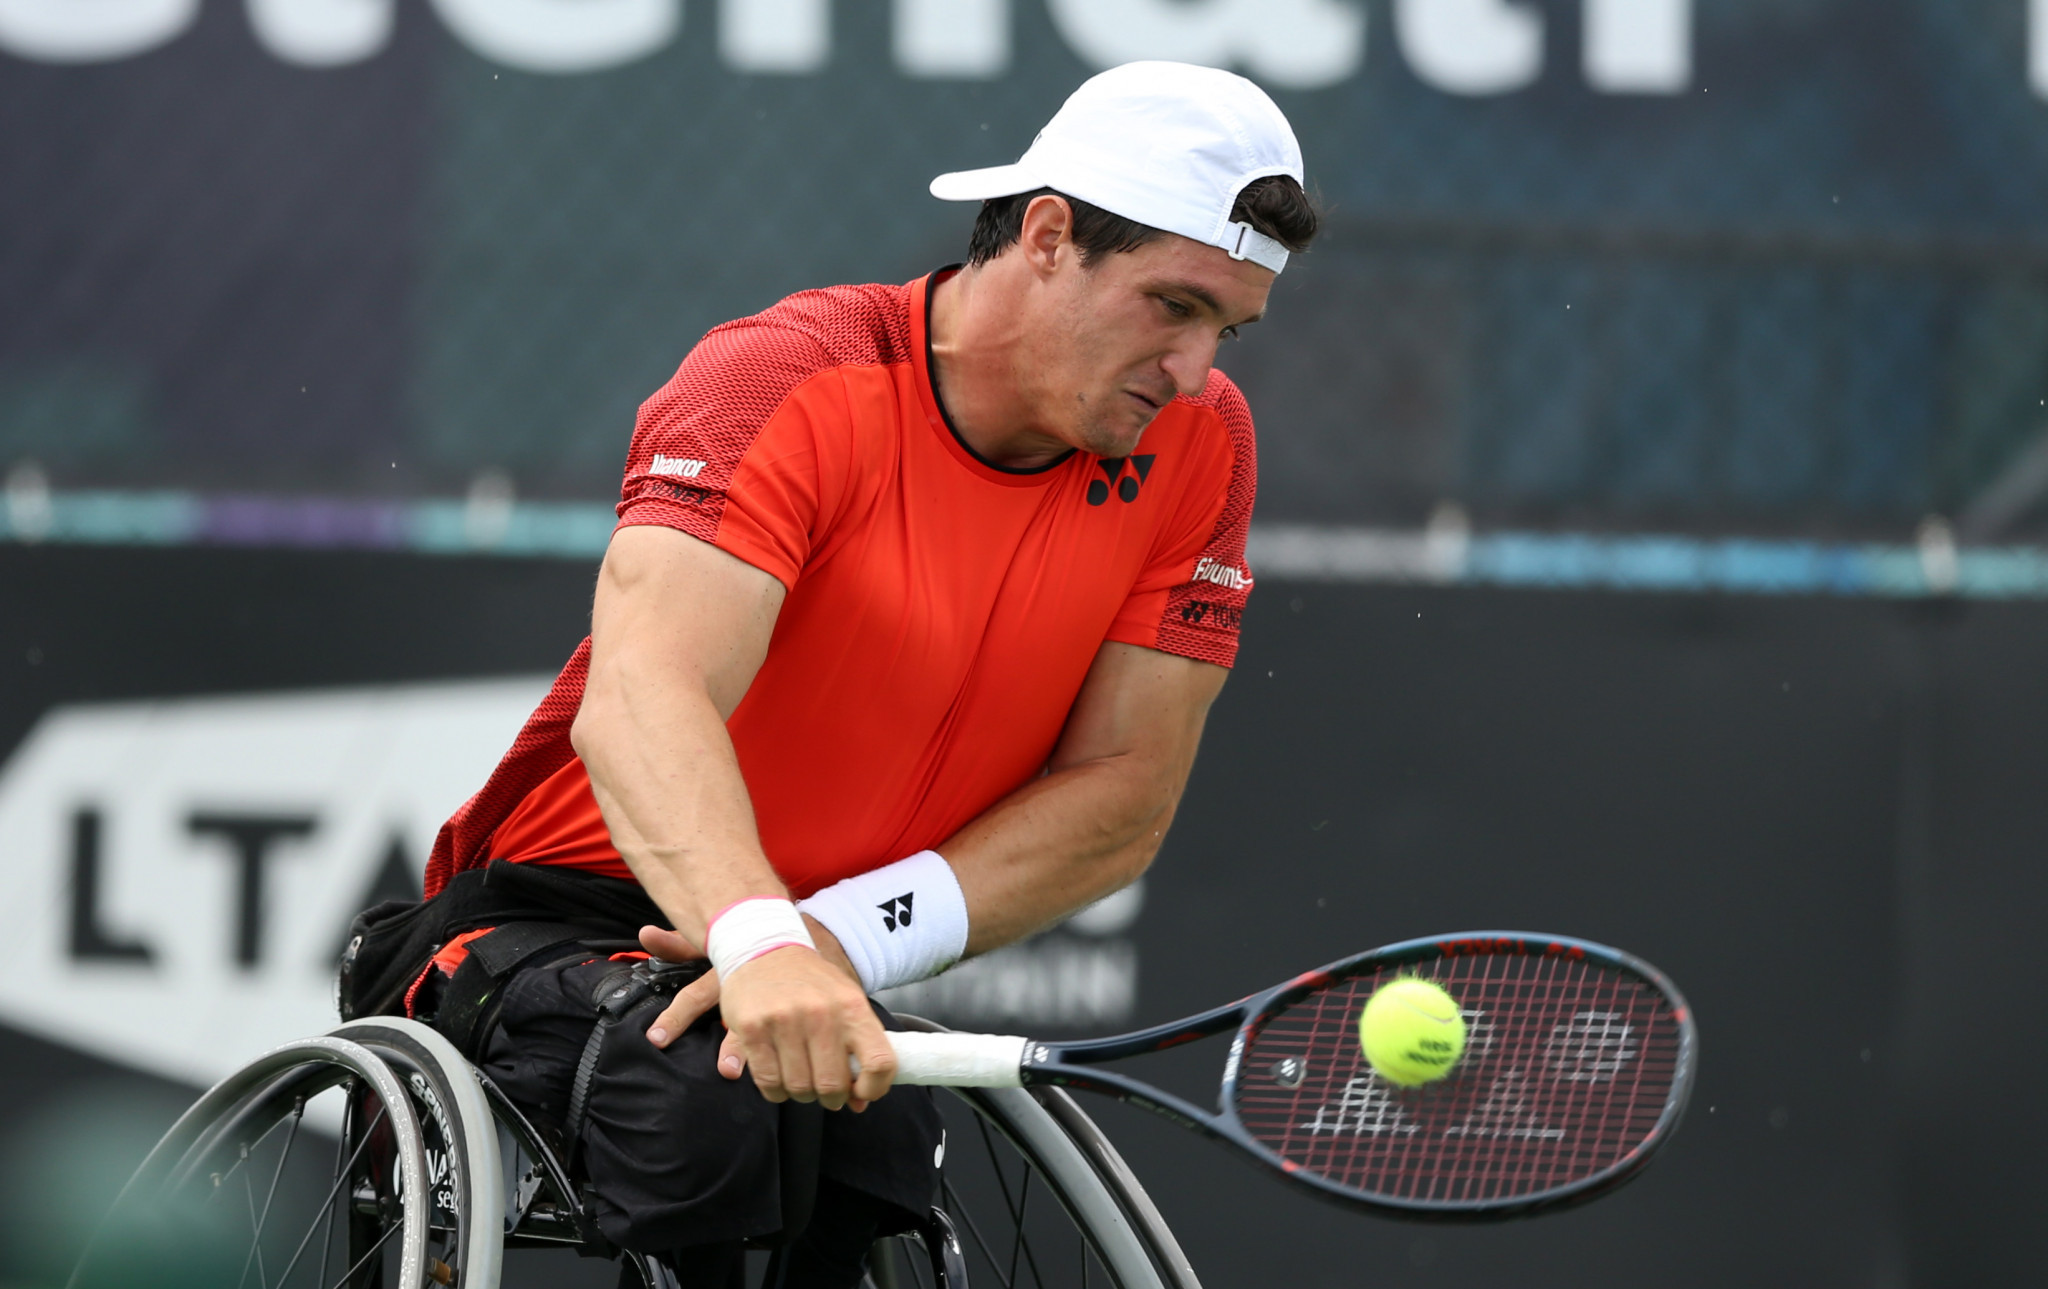 Fernández and Alcott chasing grand slams at US Open wheelchair tournament